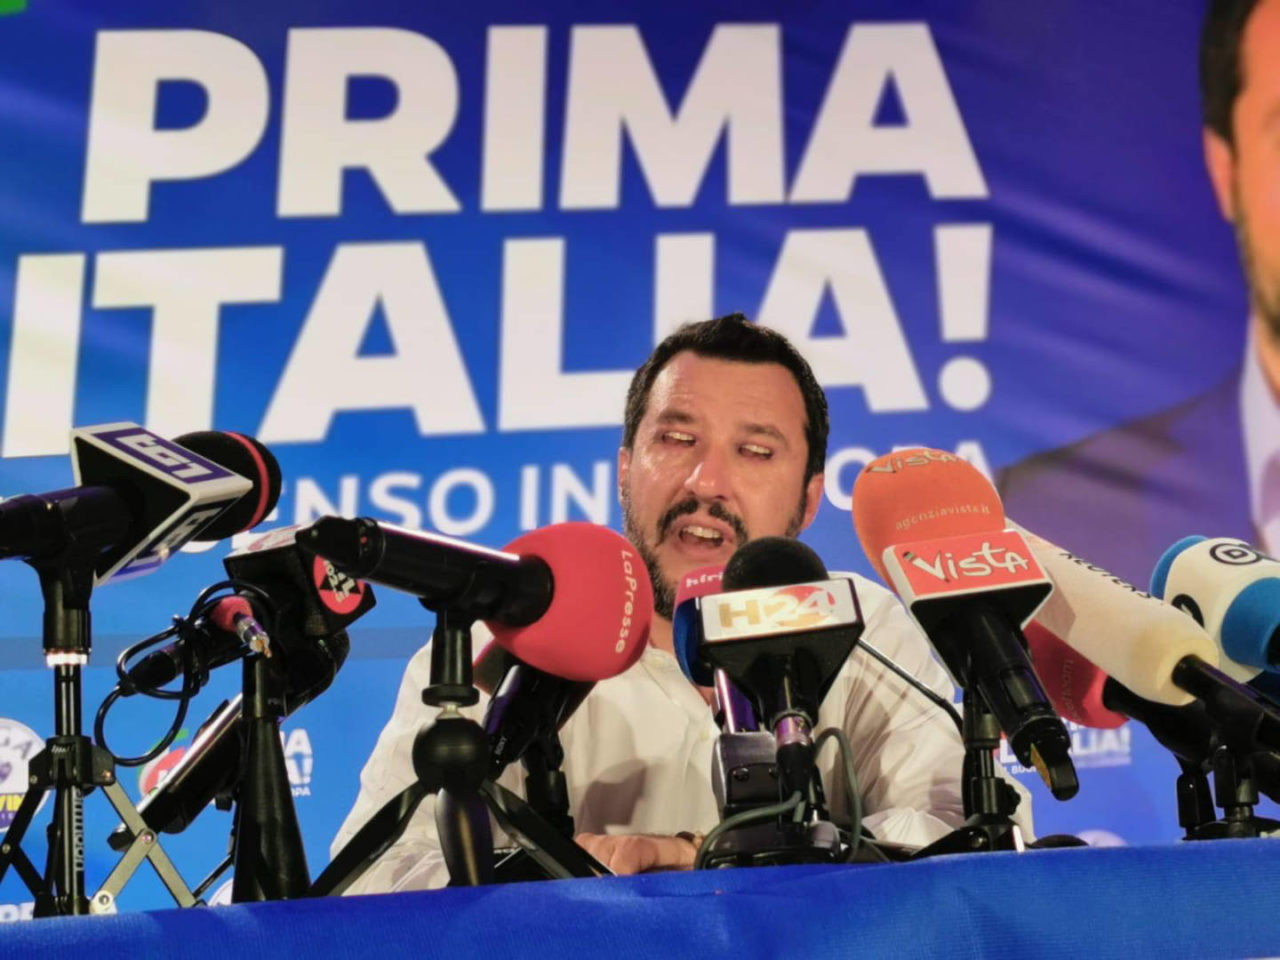 https://thesubmarine.it/wp-content/uploads/2019/05/horror-salvini-1280x960.jpg